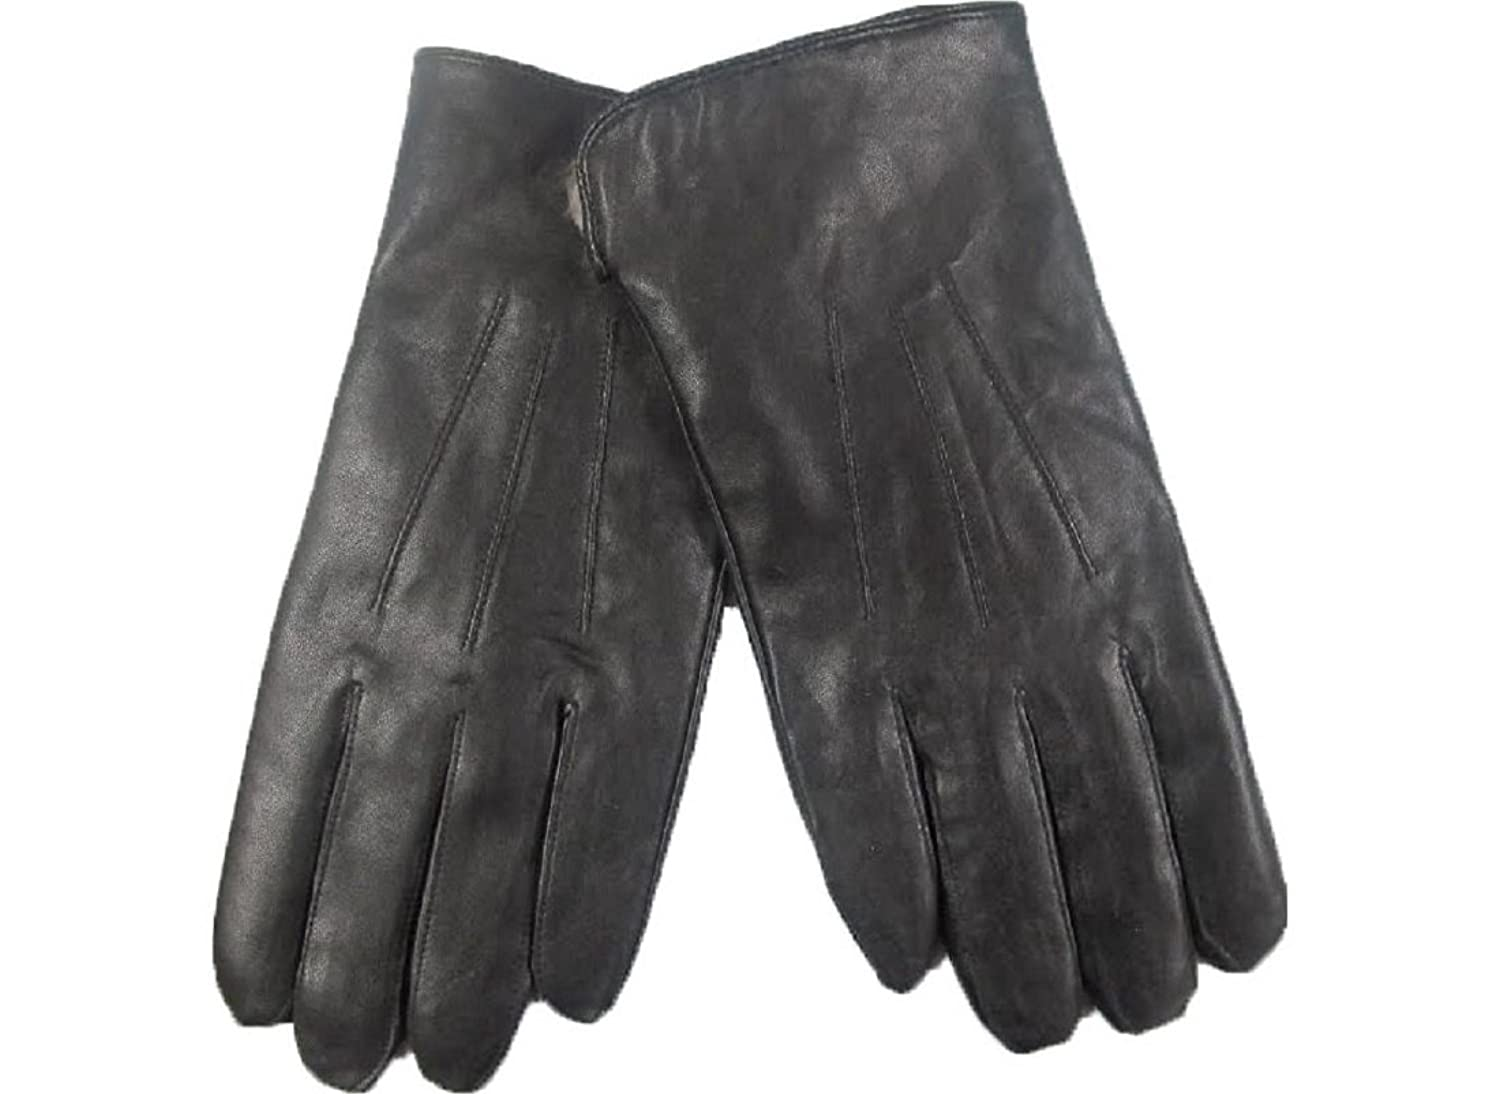 Black leather gloves with fur - Top Quality Men S Rabbit Fur Lined Genuine Soft Black Leather Gloves 2xlarge At Amazon Men S Clothing Store